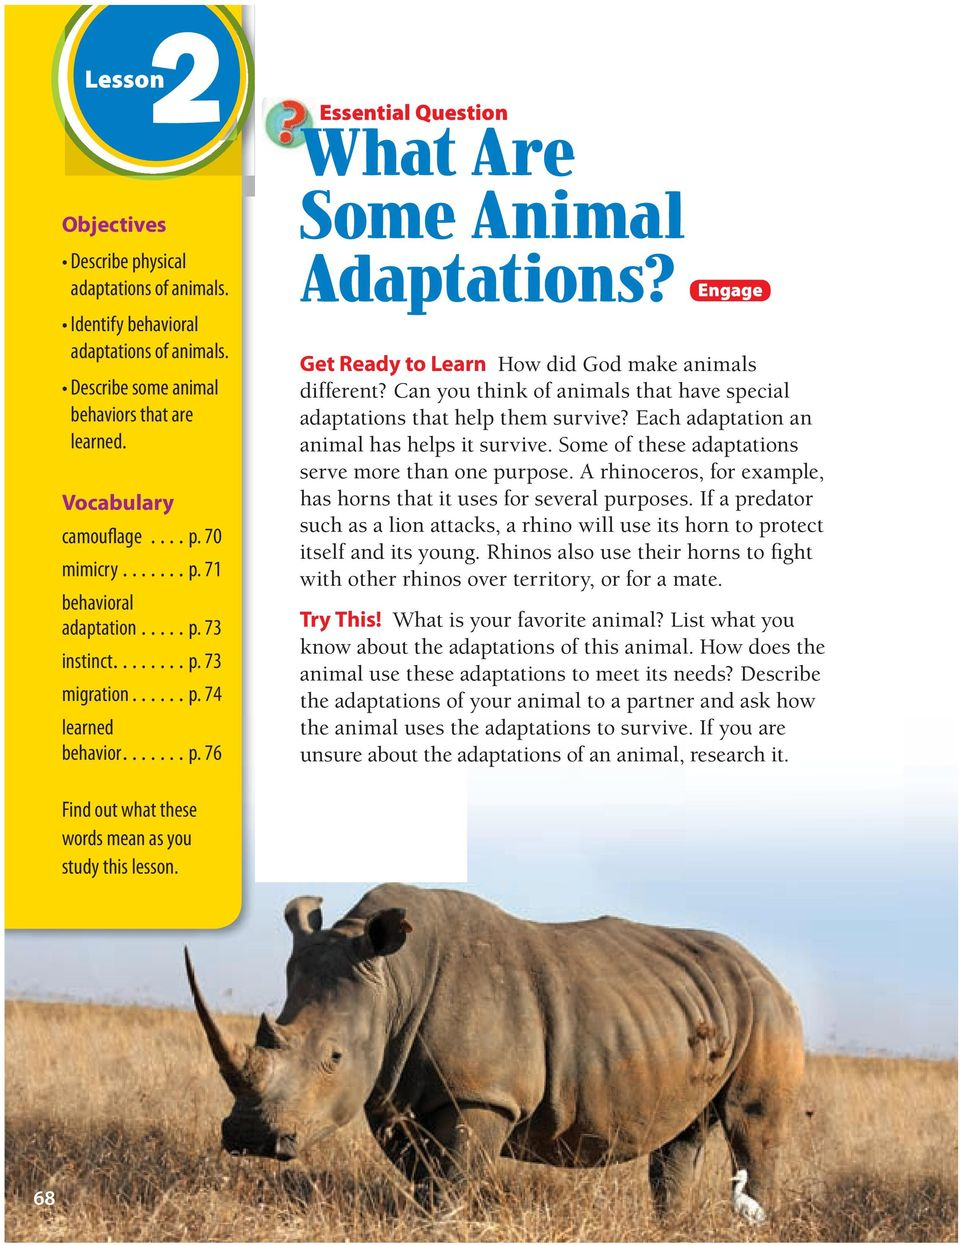 Can you think of animals that have special adaptations that help them survive? Each adaptation an animal has helps it survive. Some of these adaptations serve more than one purpose.